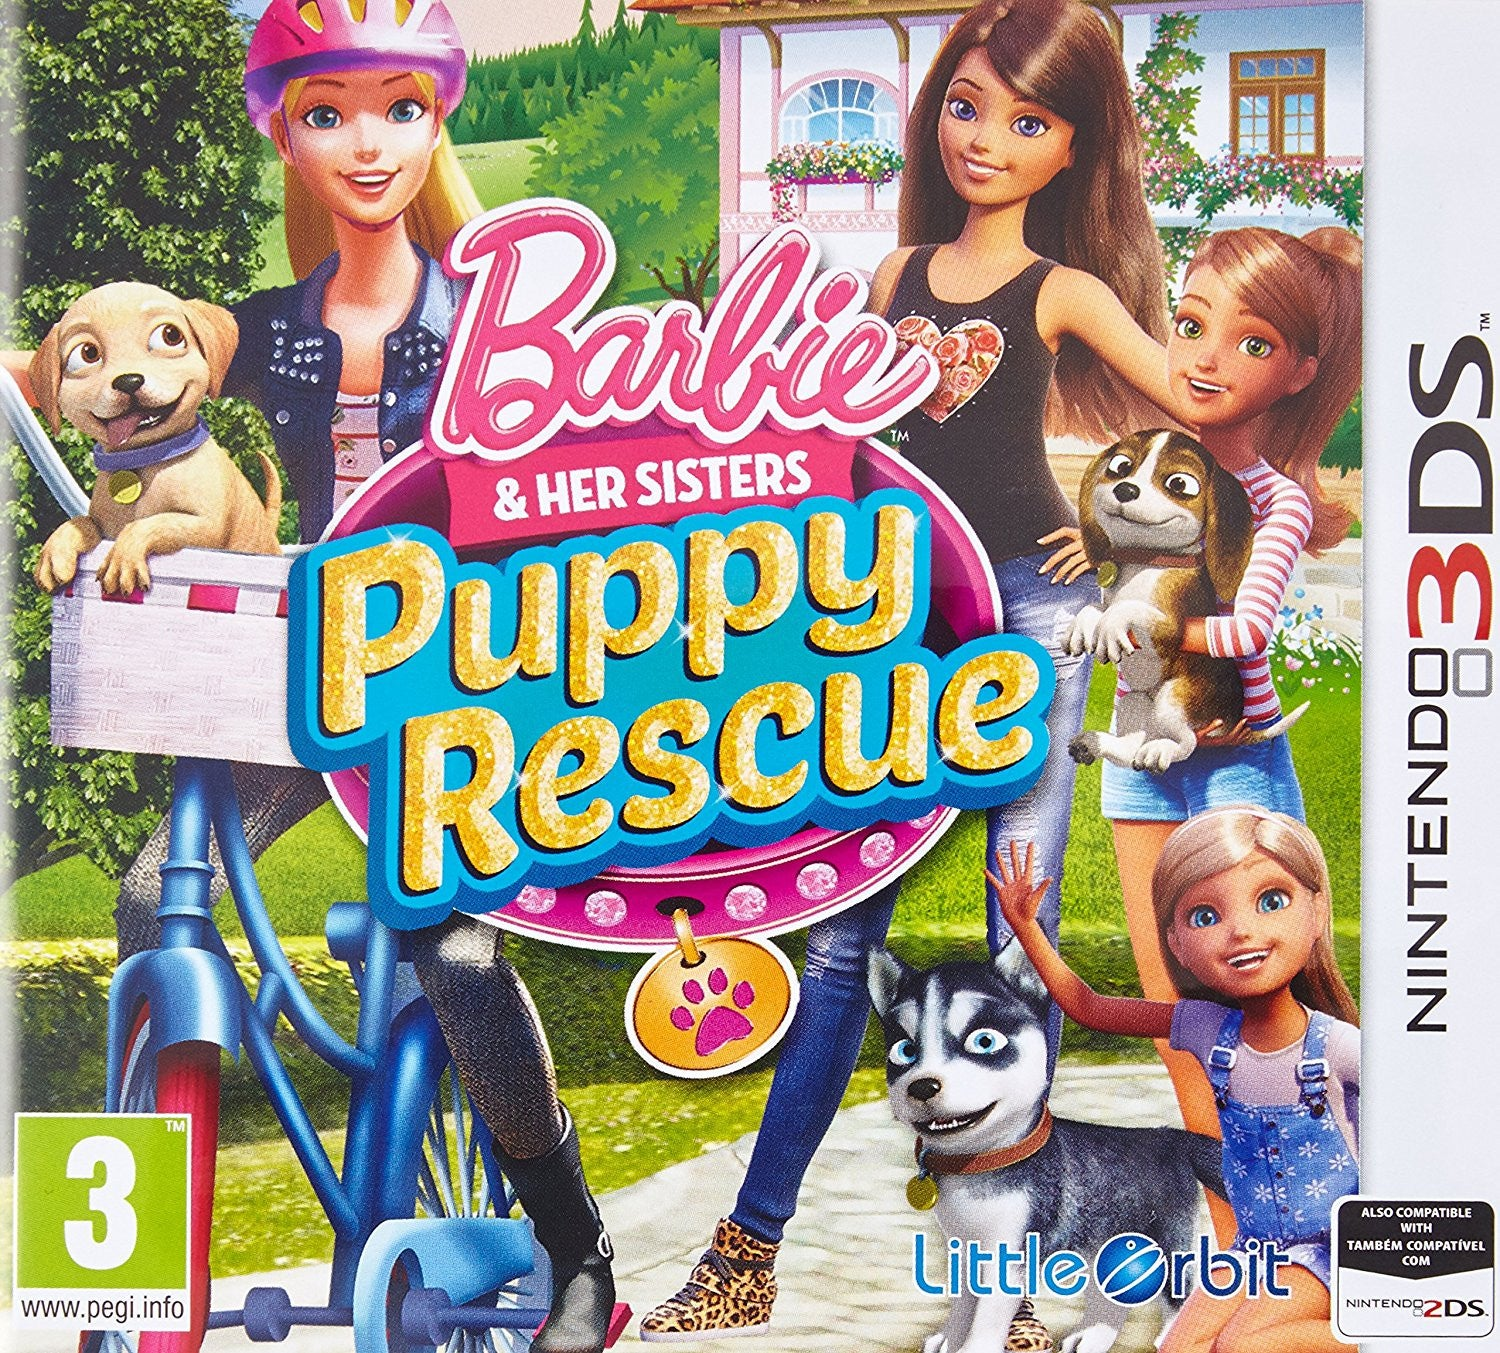 Barbie and Her Sisters Puppy Rescue (Nintendo 3DS)